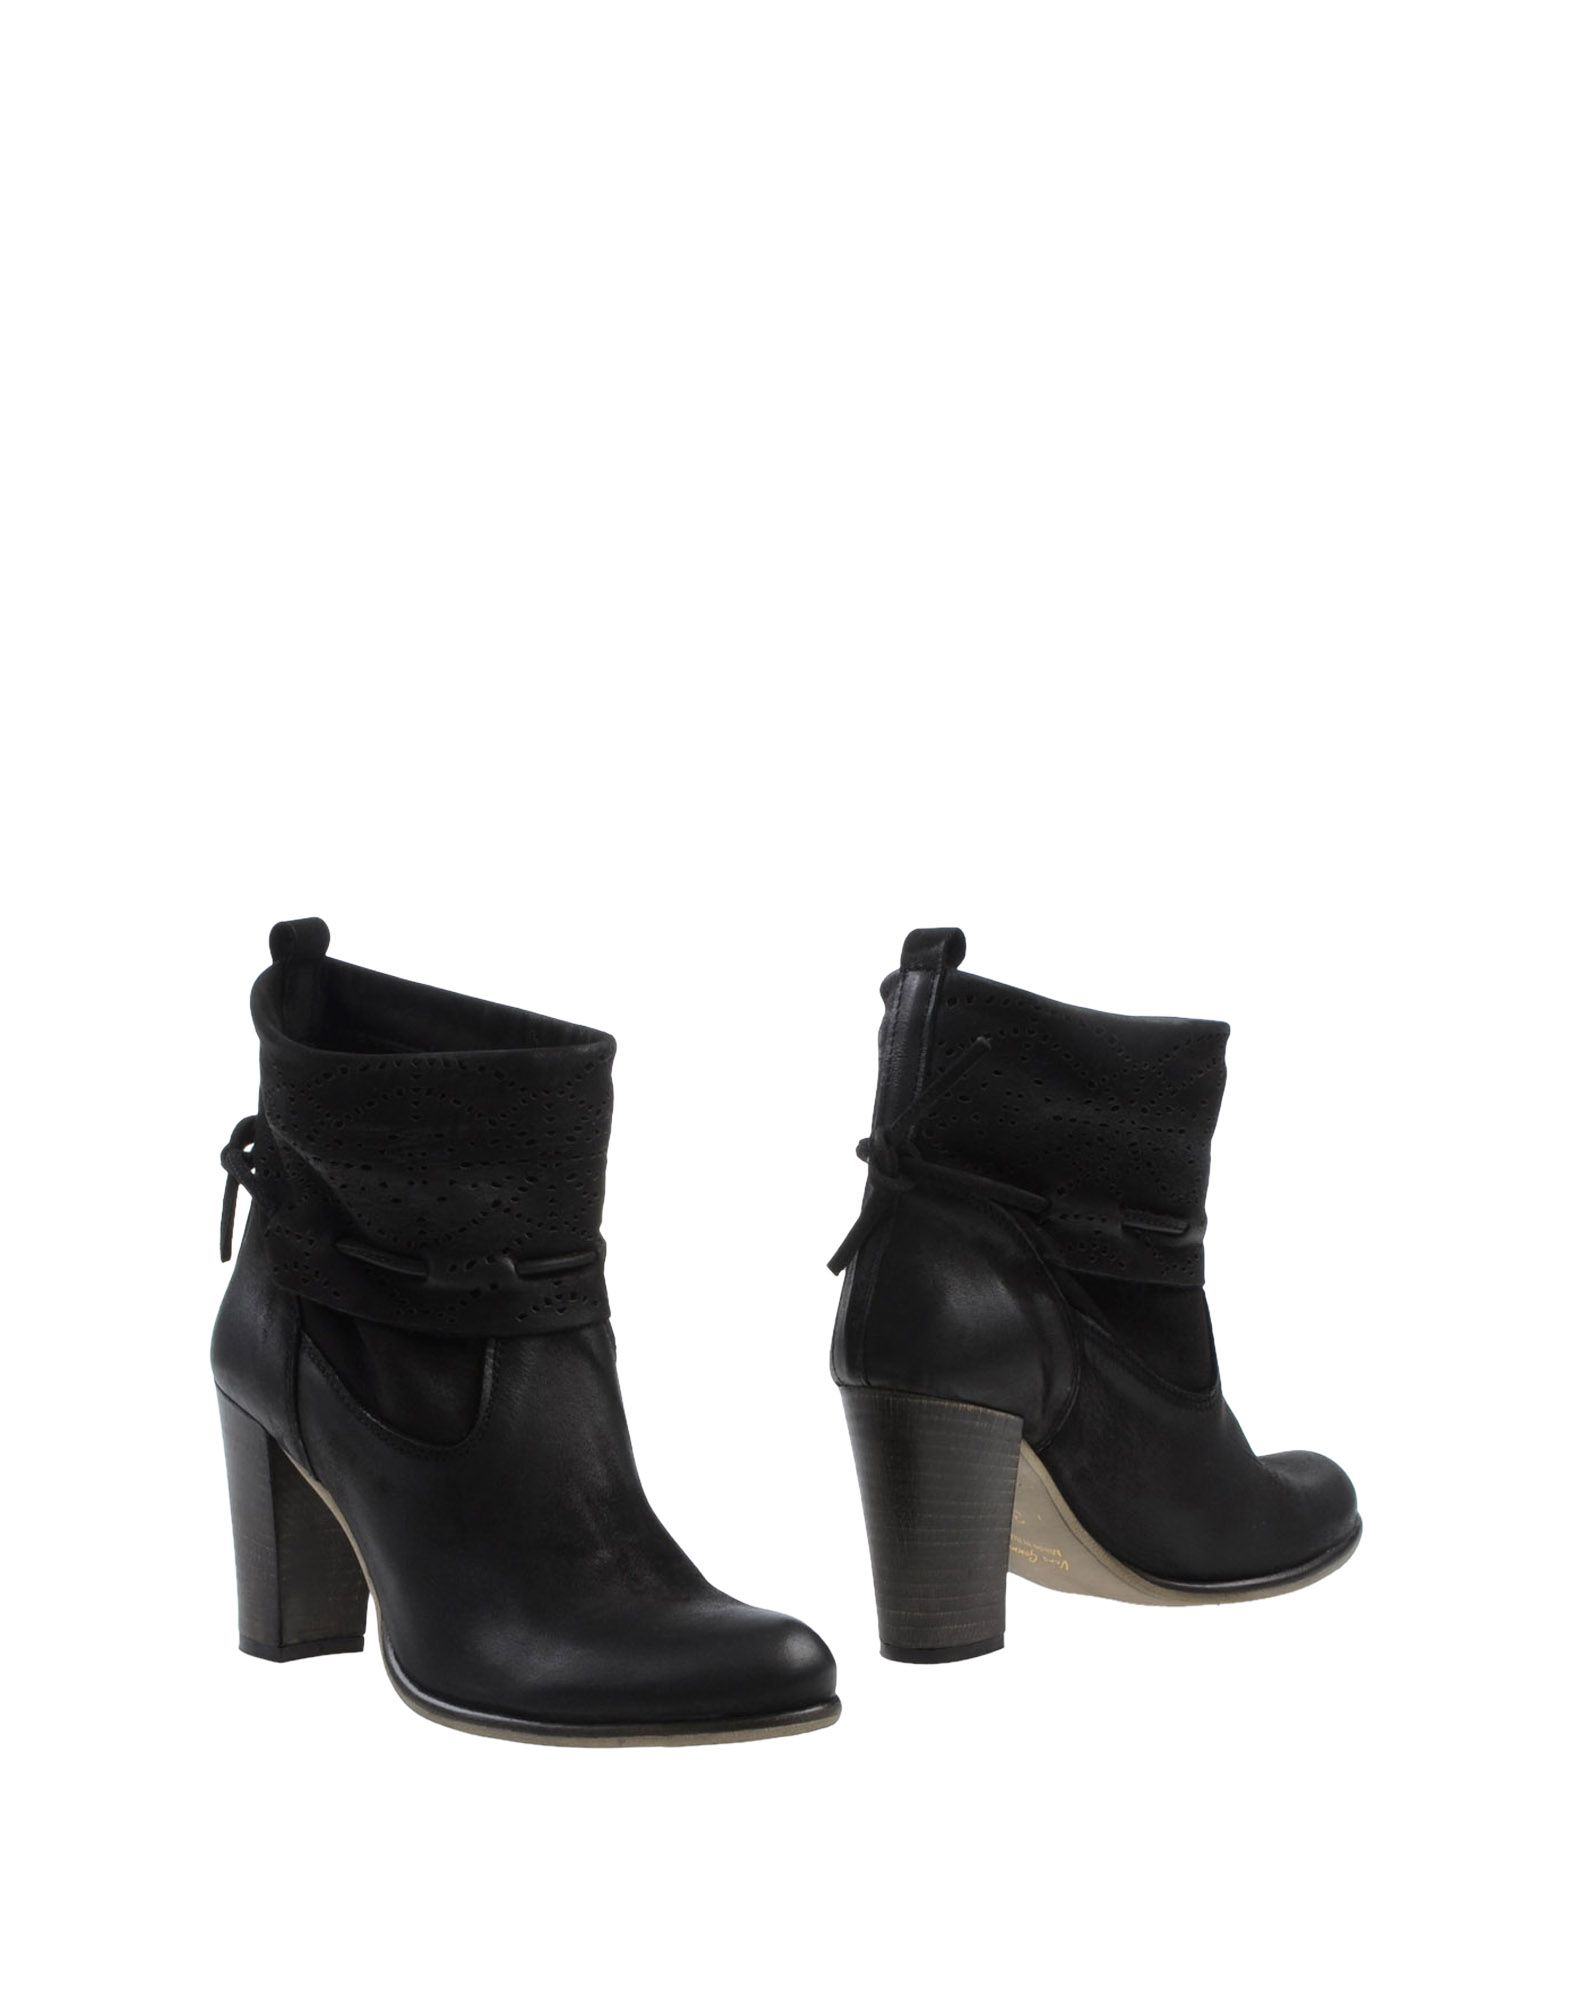 Scoop Suede Ankle Boots outlet amazing price Ccxcz13t